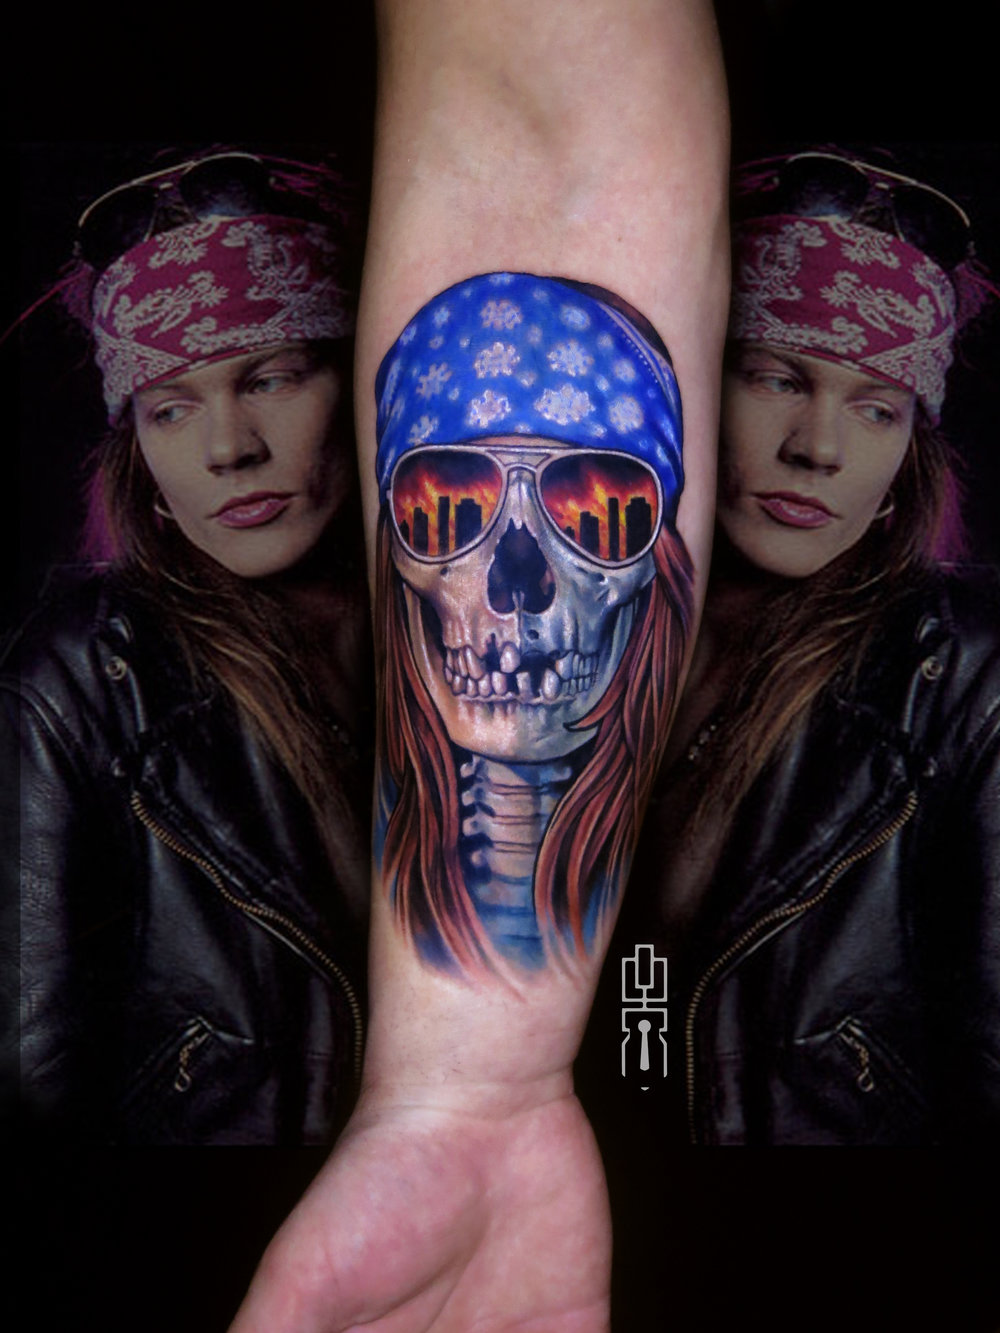 axl rose appetite for destruction tattoo 2.jpg